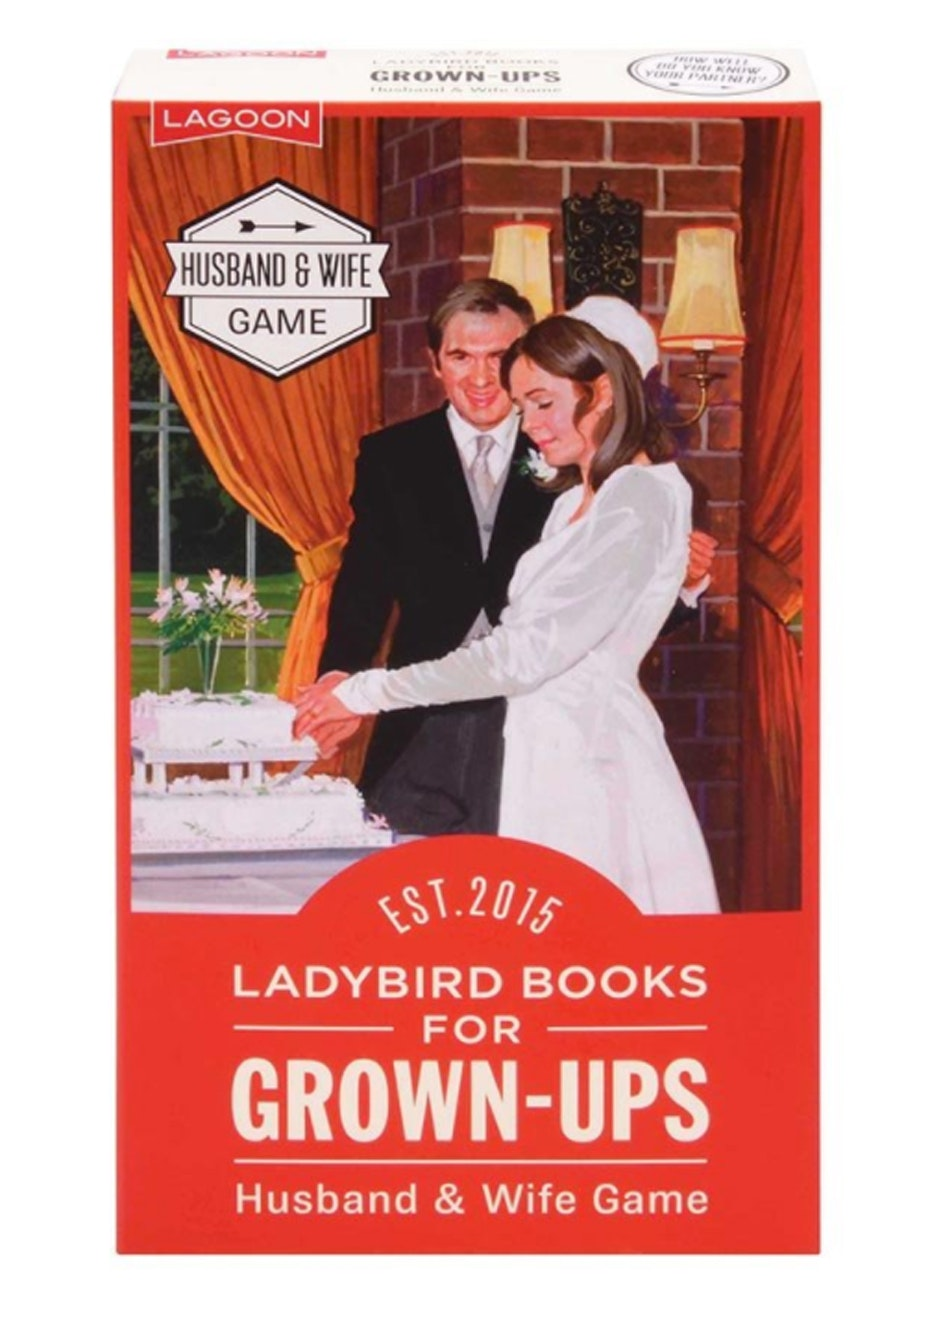 Ladybird for Grown-Ups Husband and Wife Game